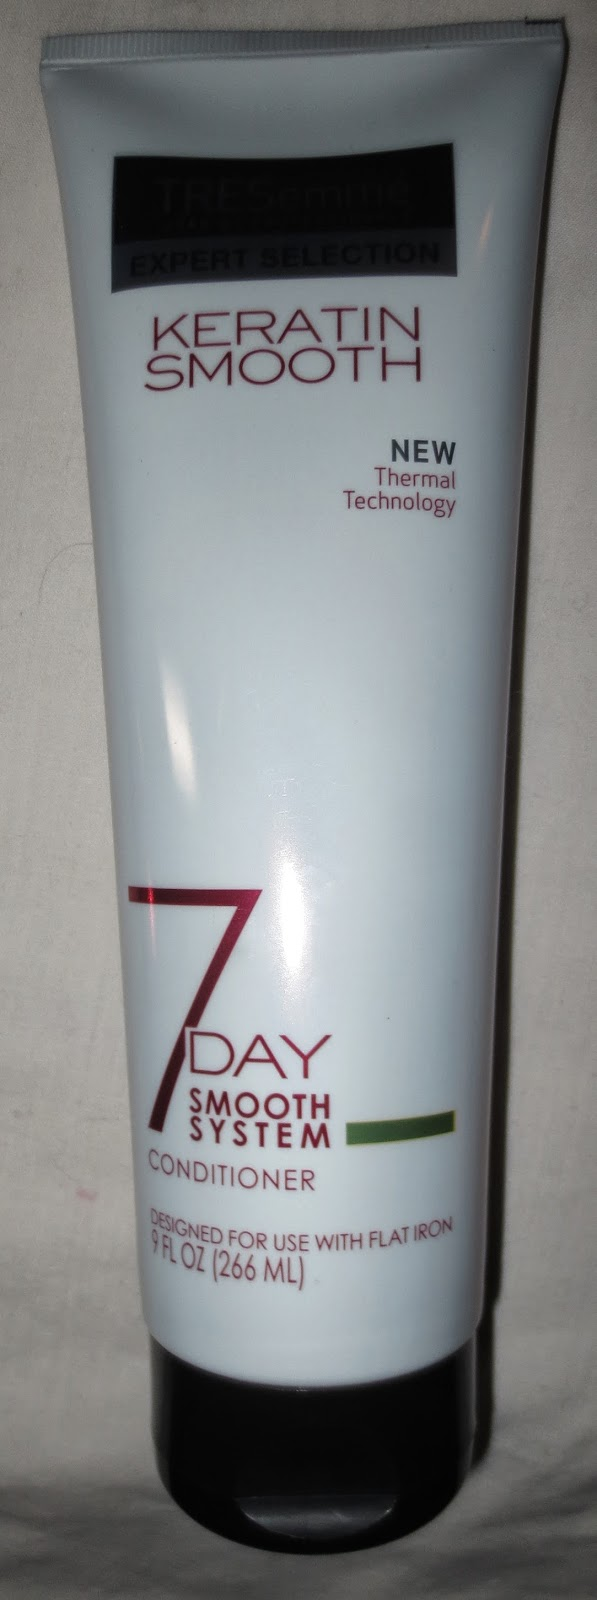 TRESemmé 7 Day Keratin Smooth System Conditioner